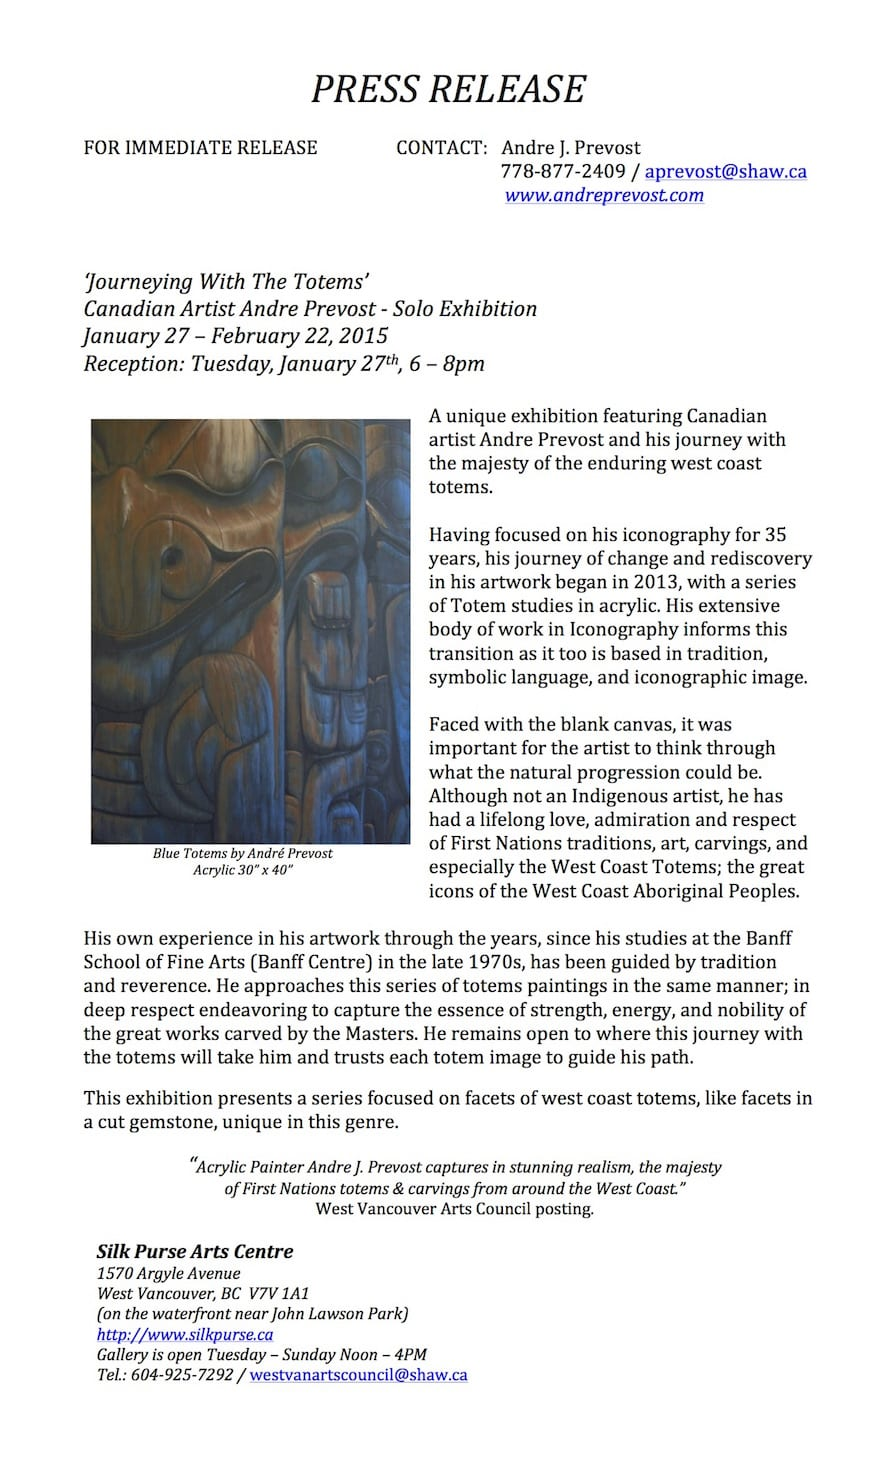 Journeying With The Totems Solo Exhibition at the Silk Purse Arts Centre